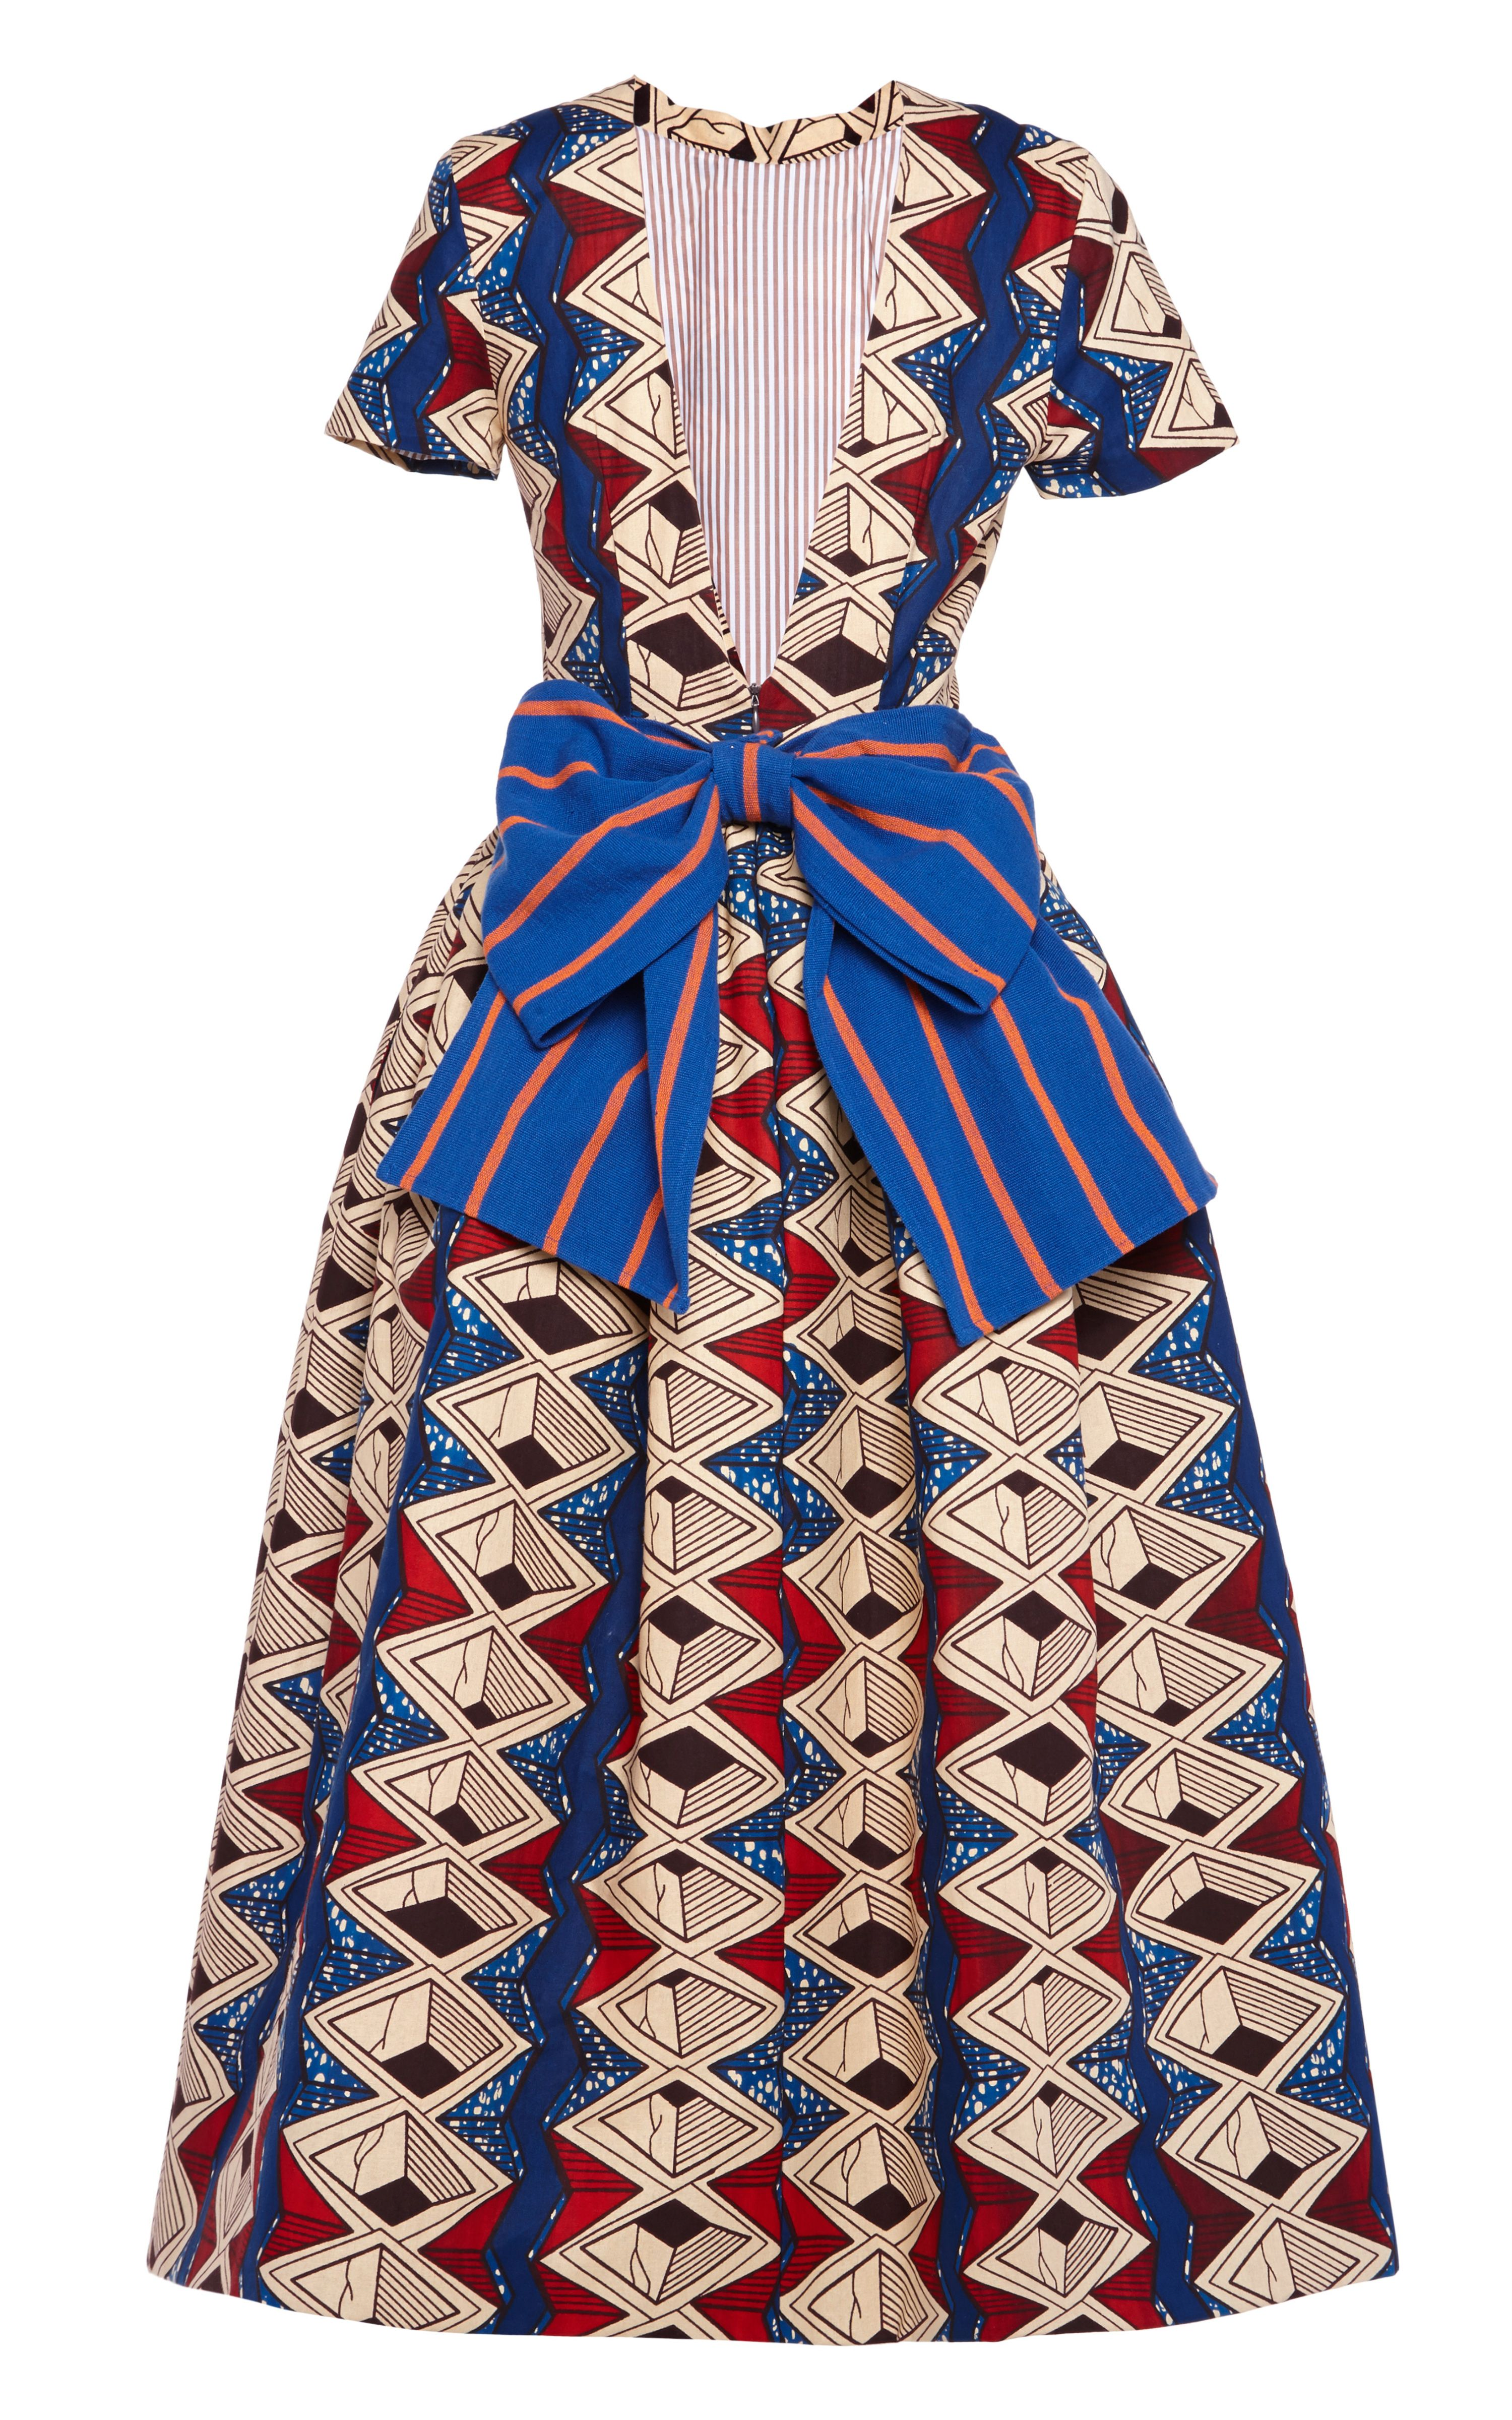 Myrtle Printed Wax Cotton Party Dress With Striped Bow by ...